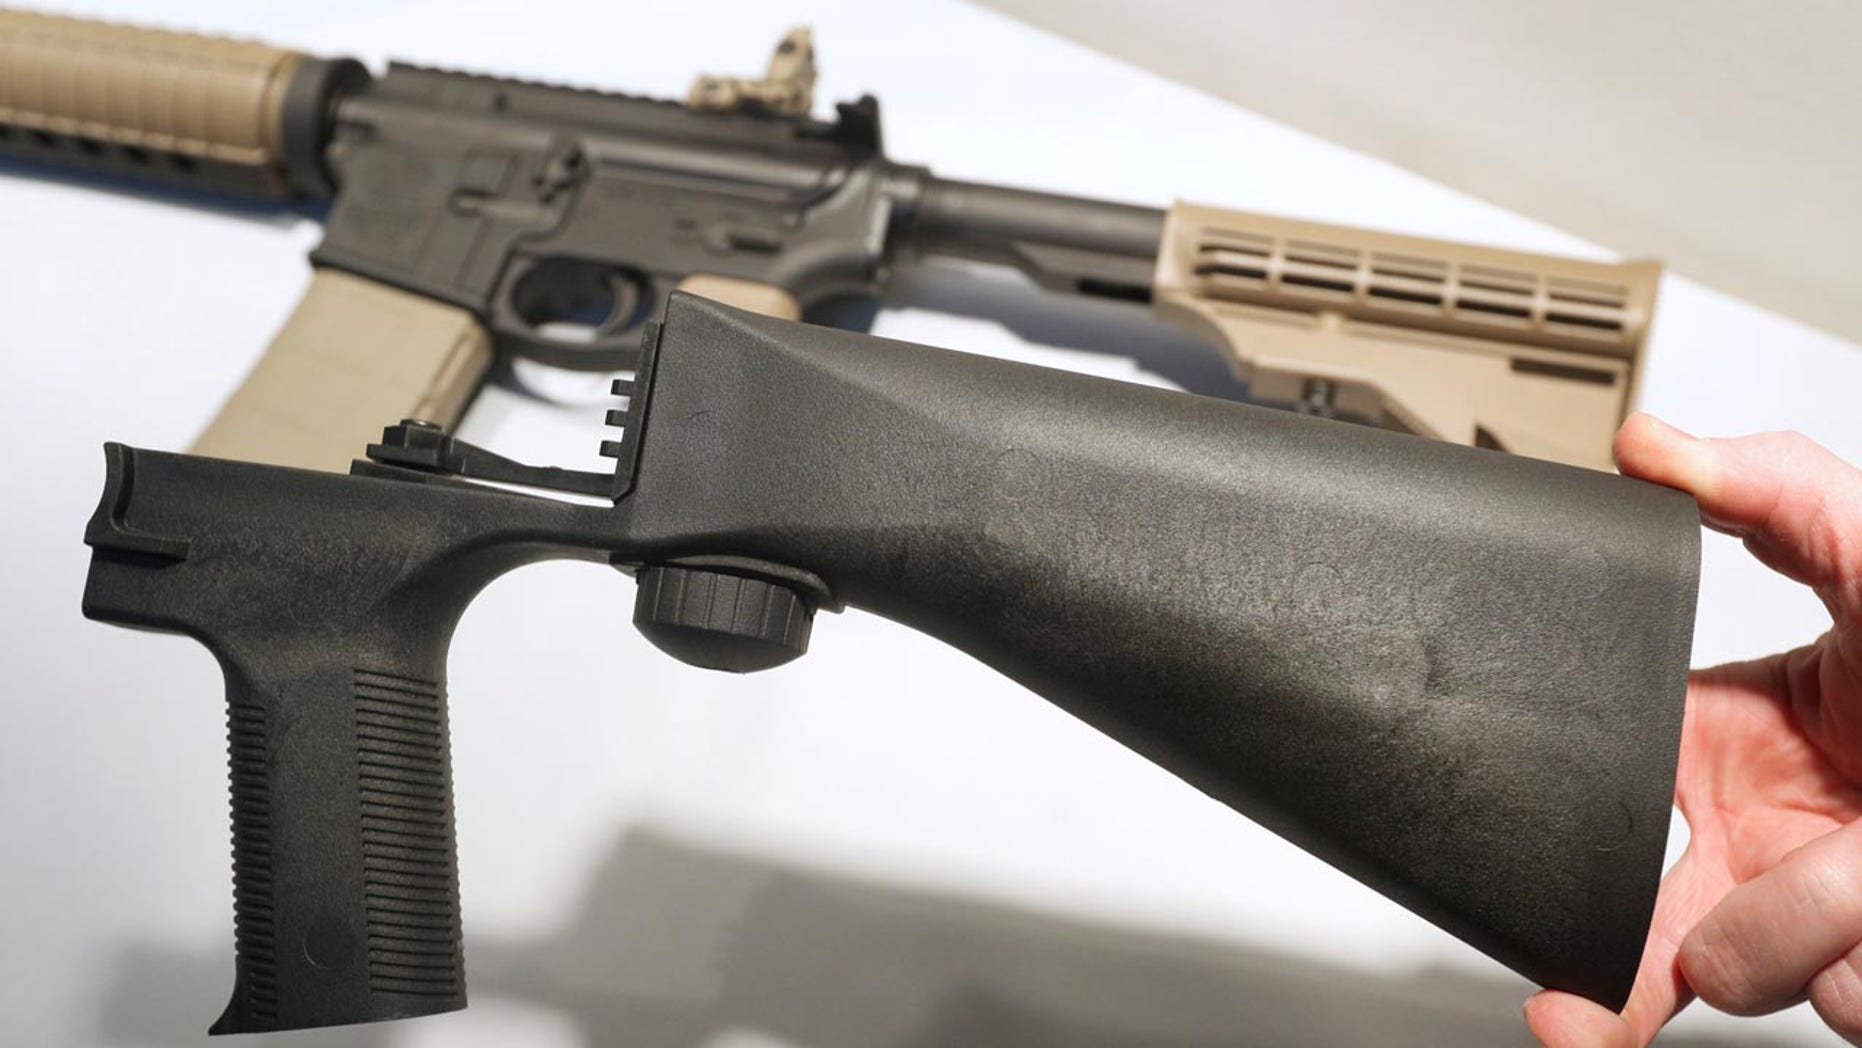 Oct. 4: A 'bump stock' that attaches to a semi-automatic rifle to increase the firing rate.